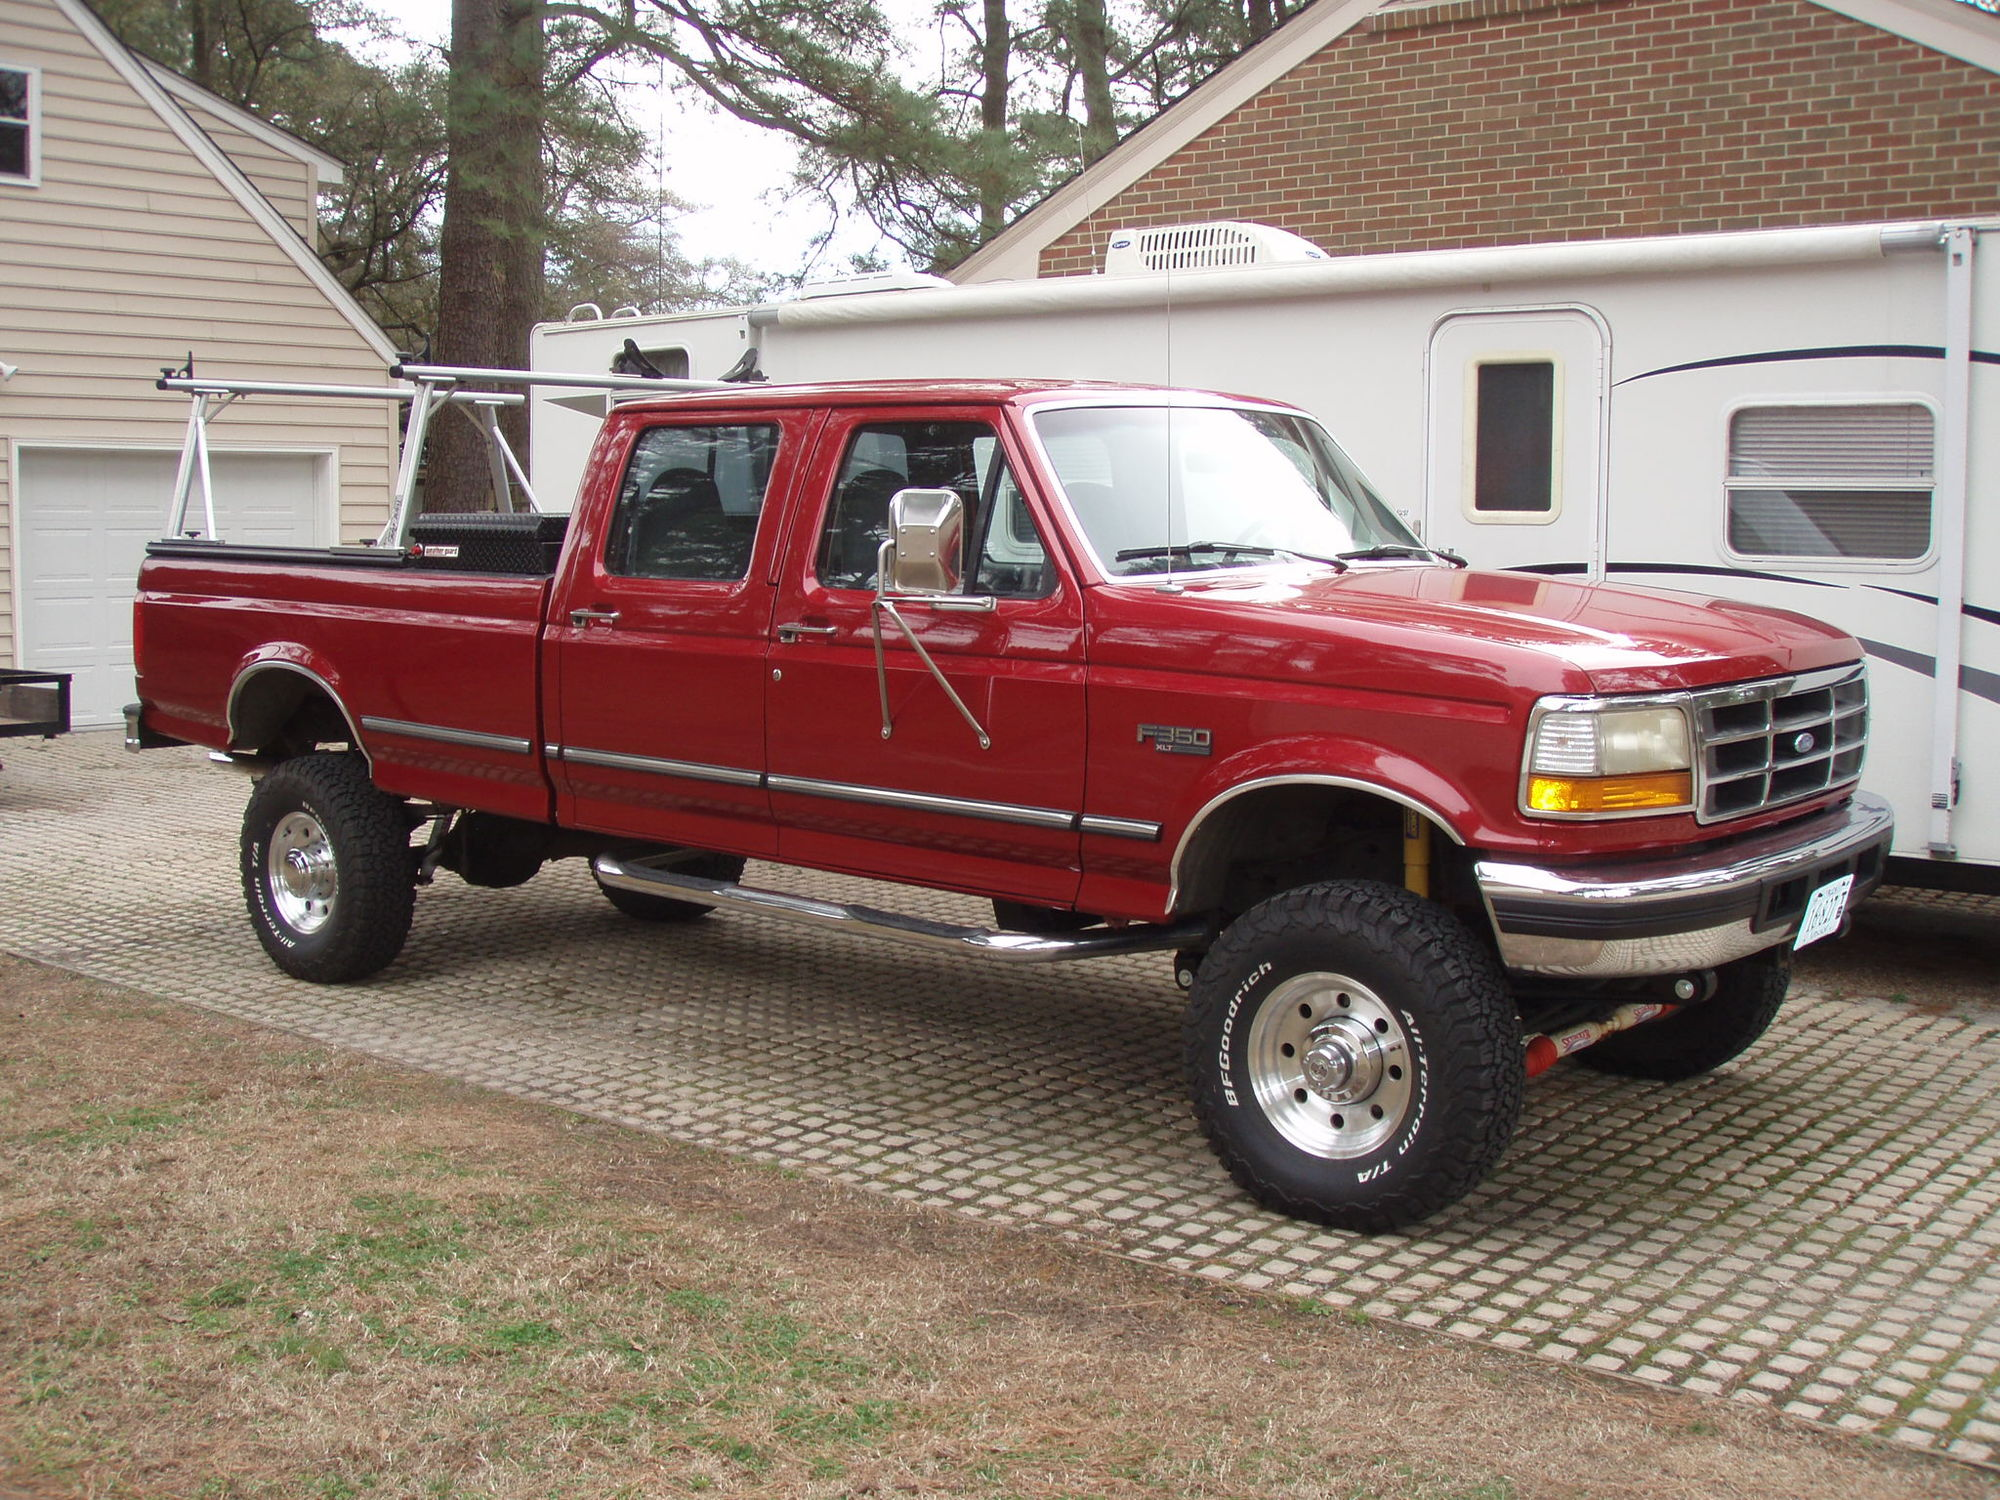 97 f 350 4x4 pmf rsk with super duty springs install. Black Bedroom Furniture Sets. Home Design Ideas